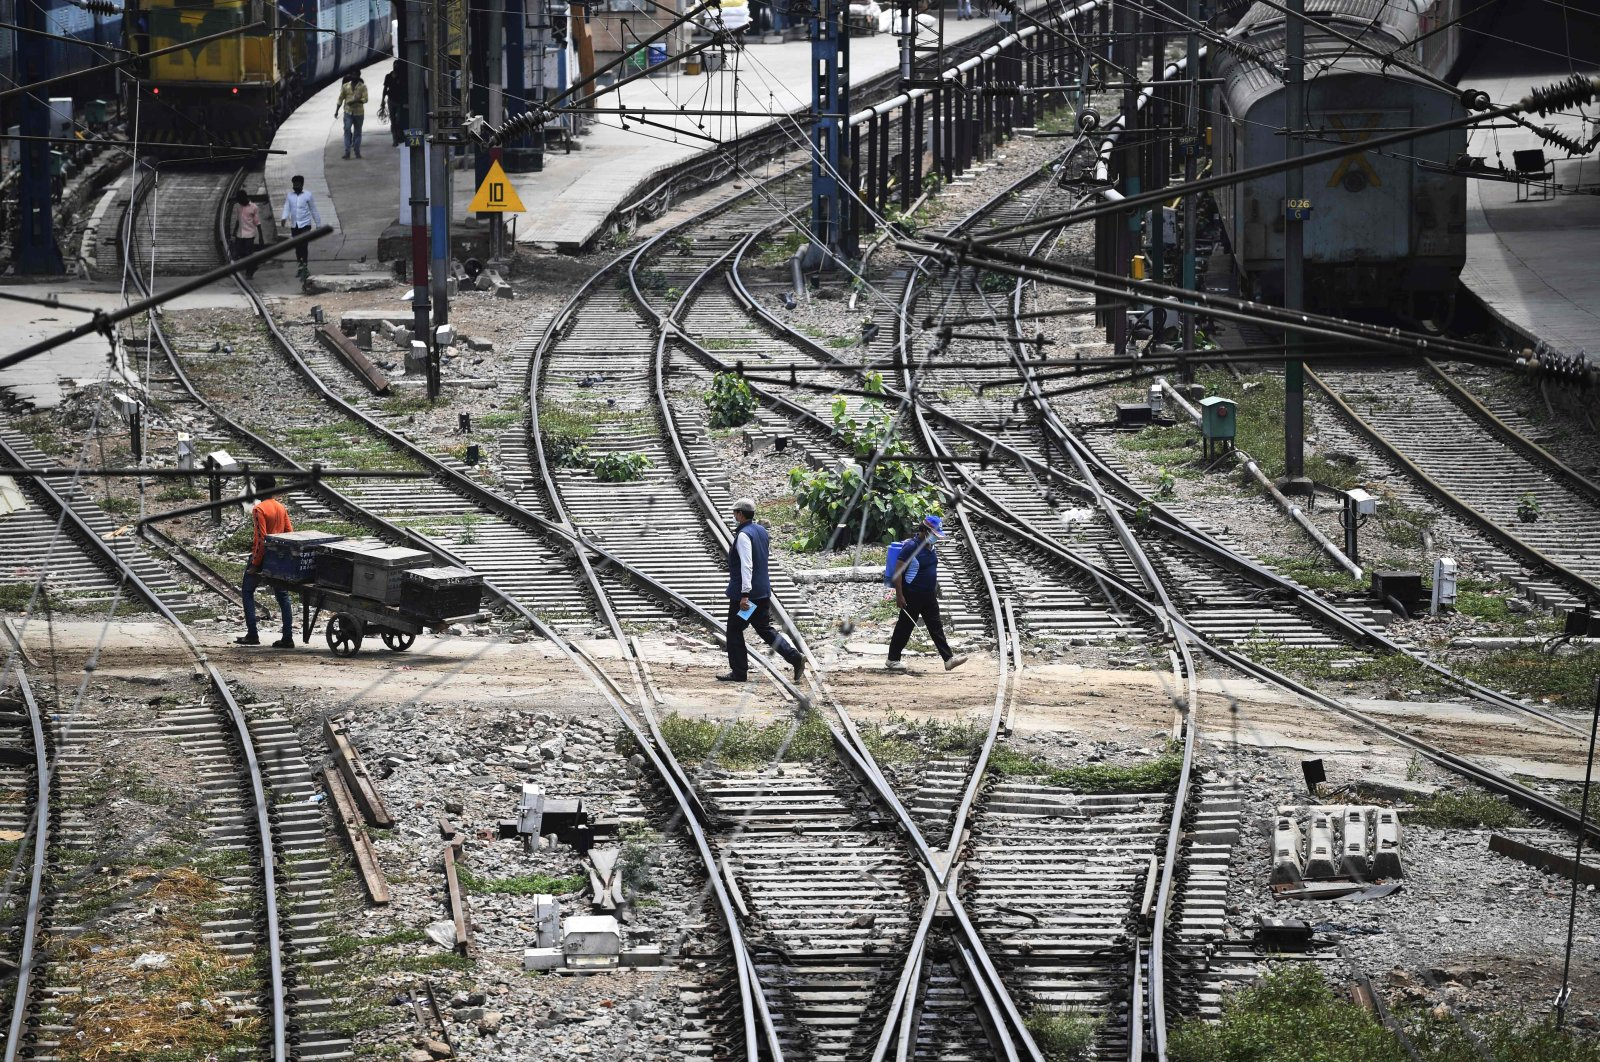 Commuters walk through the tracks at the railway station in New Delhi on May 11, 2020. (AFP Photo)